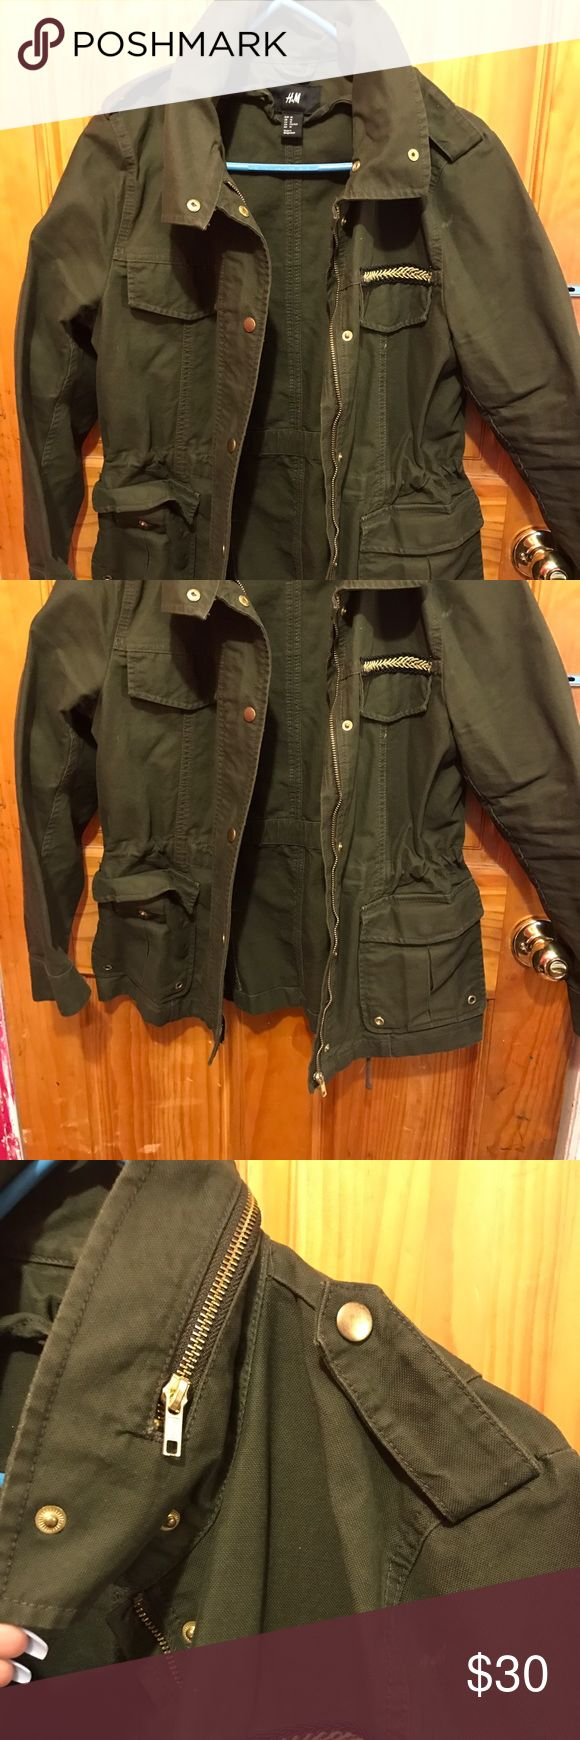 Olive utility spring jacket H&M olive green utility jacket for women. Neck has a faux zipper. Has drawstring around to waist to tighten for a more fitted look H&M Jackets & Coats Utility Jackets